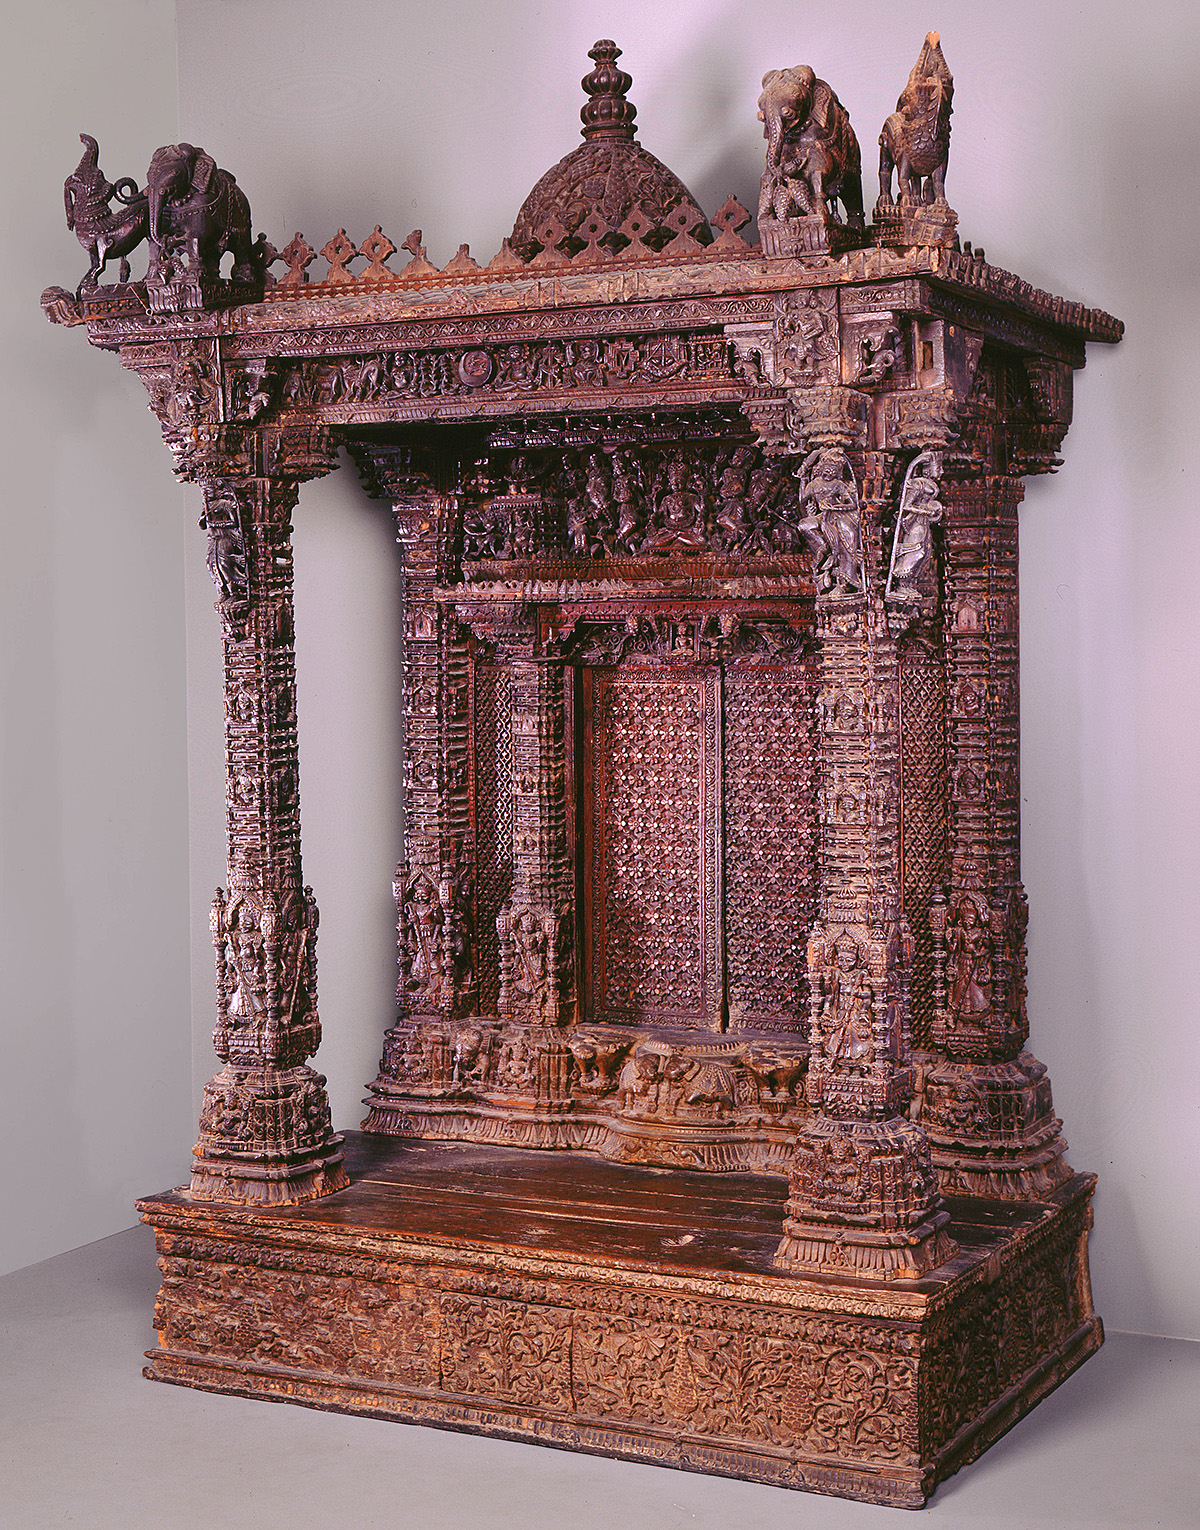 The image depicts an intricately carved wooden Jain Shrine from India